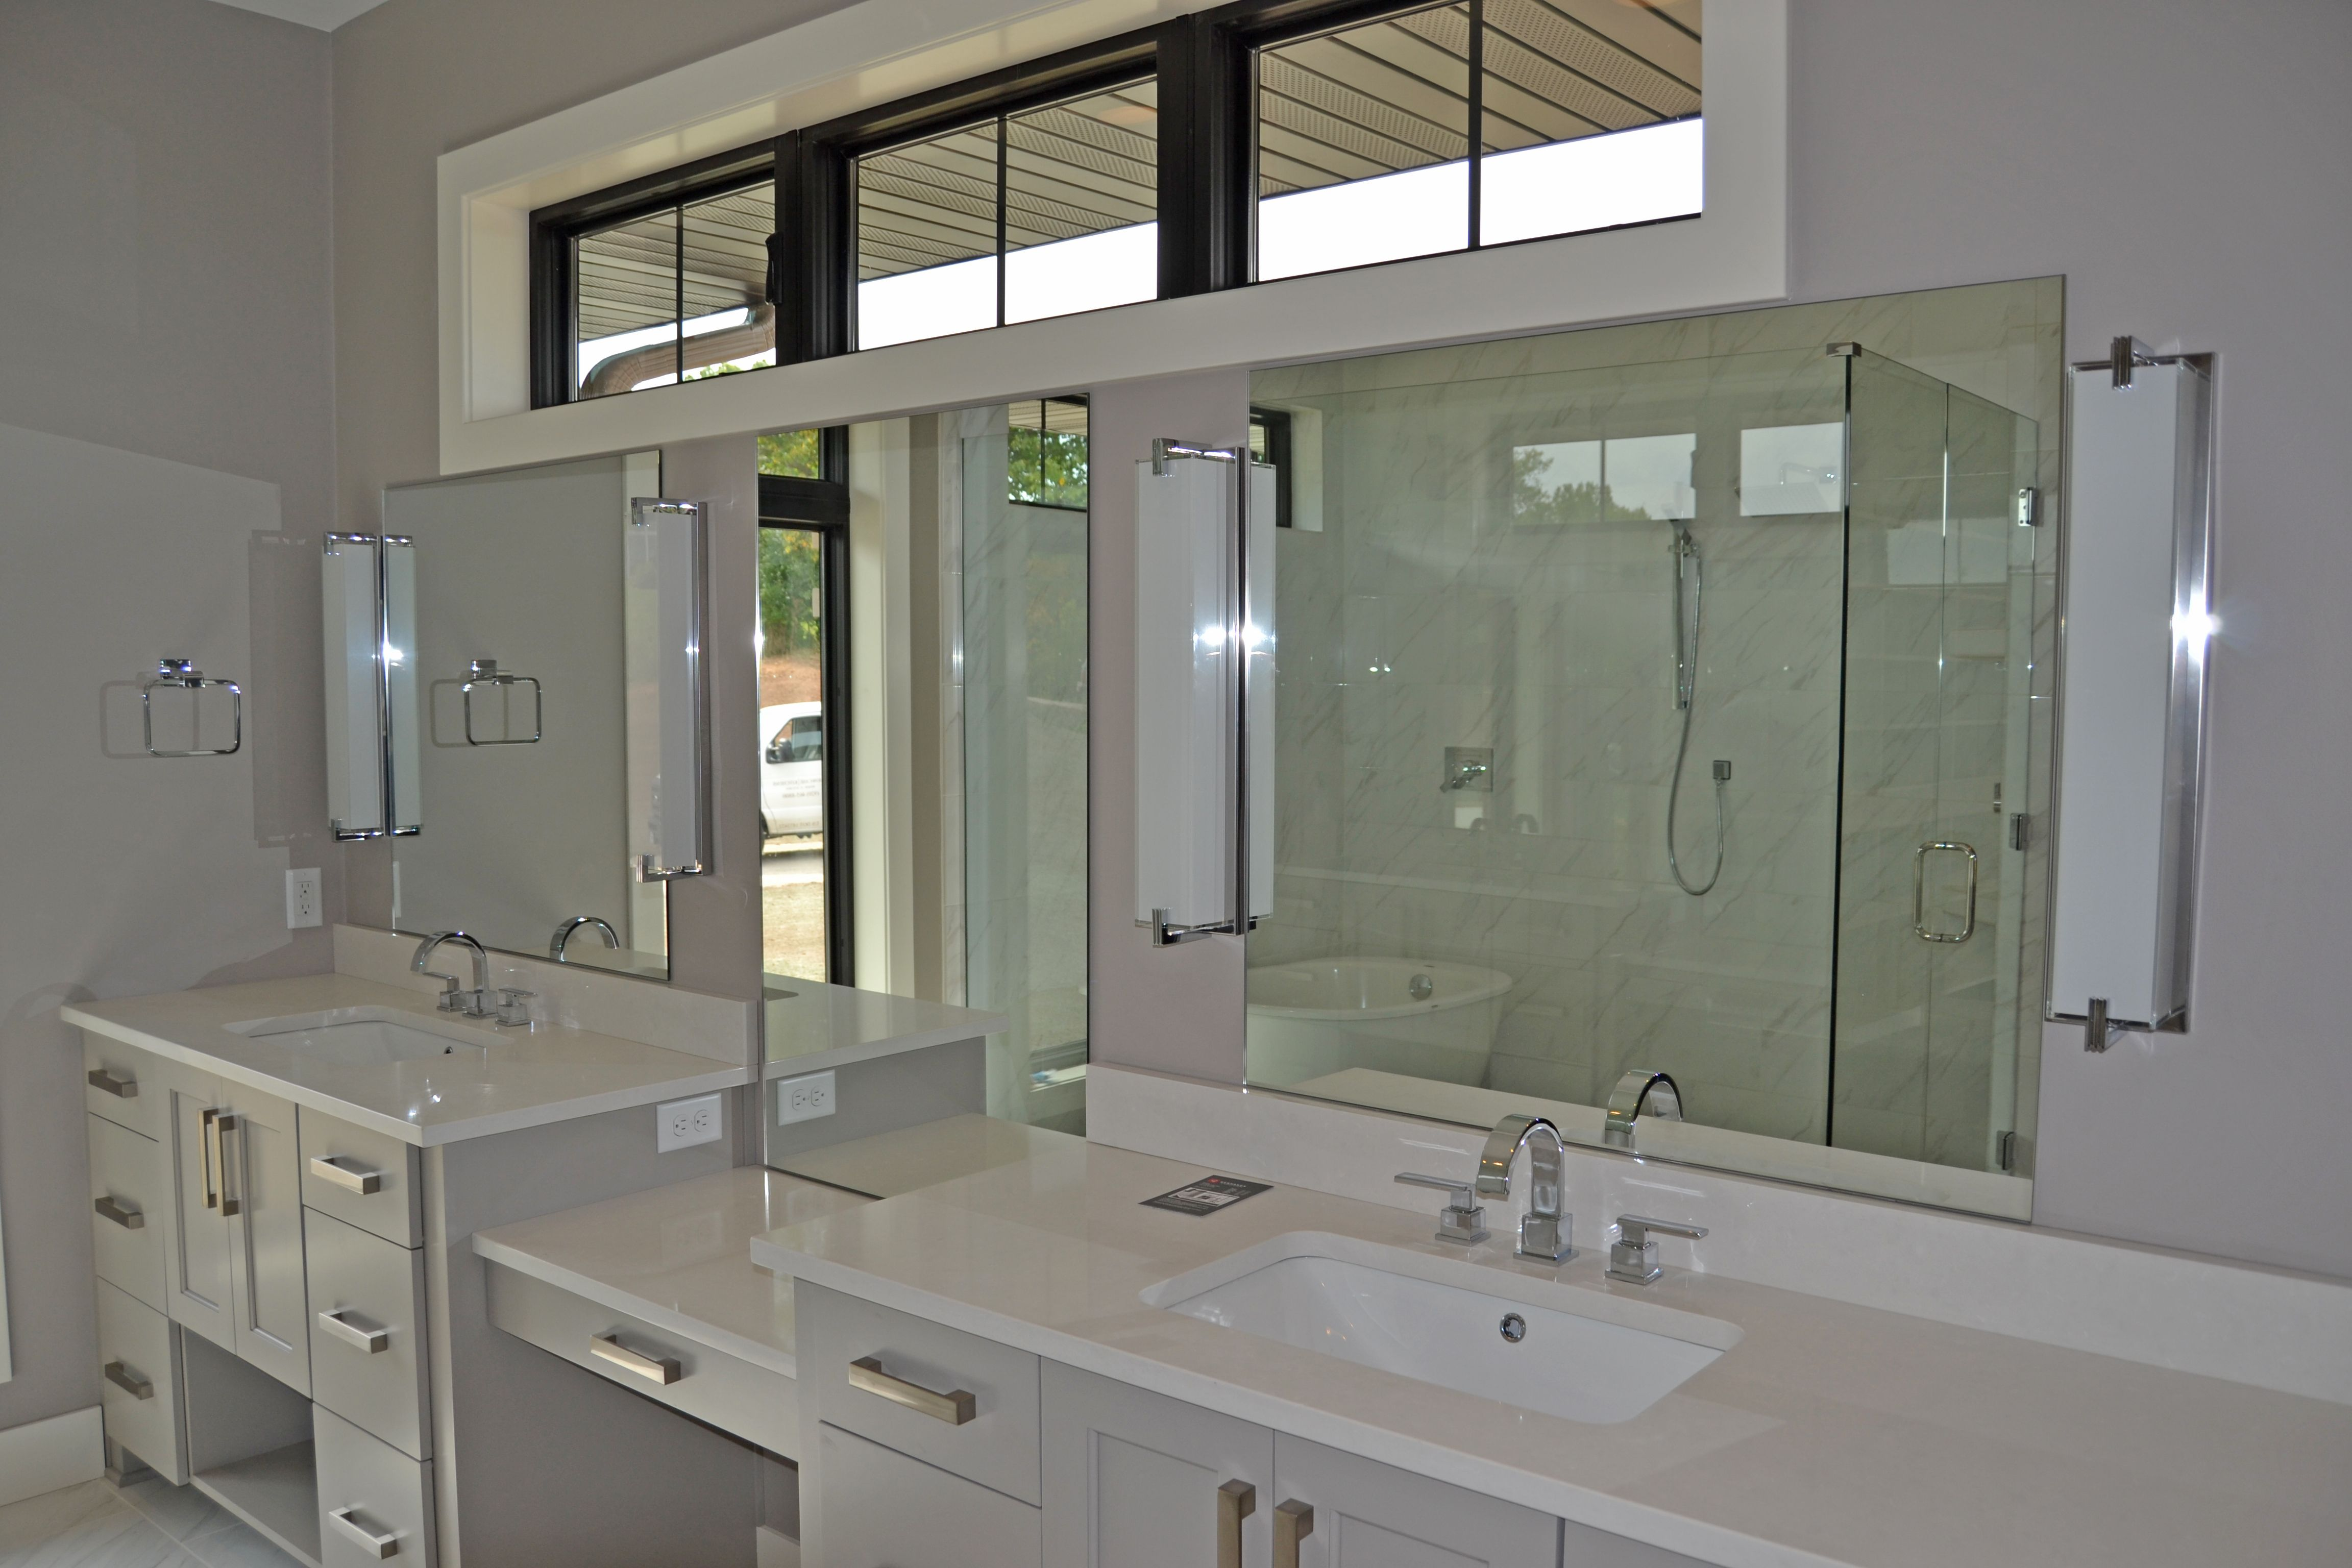 Vanity mirrors in a master bath.